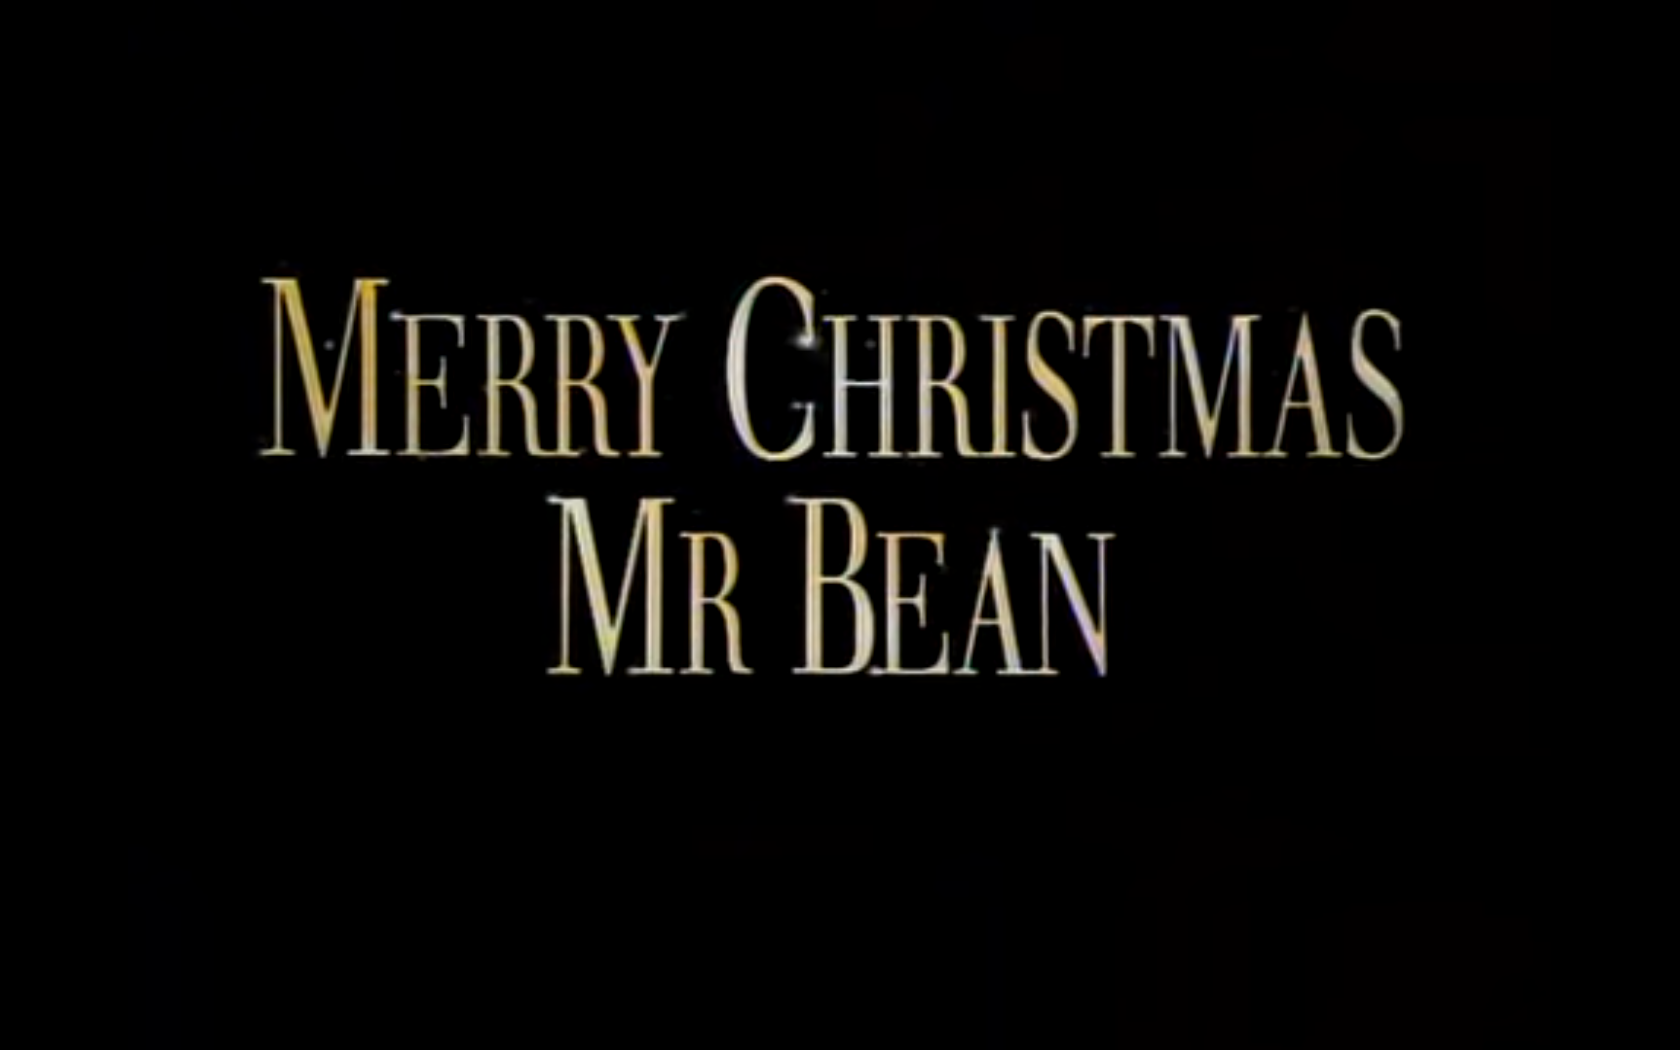 Merry christmas mr bean mr bean wiki fandom powered by wikia merry christmas mr bean solutioingenieria Choice Image